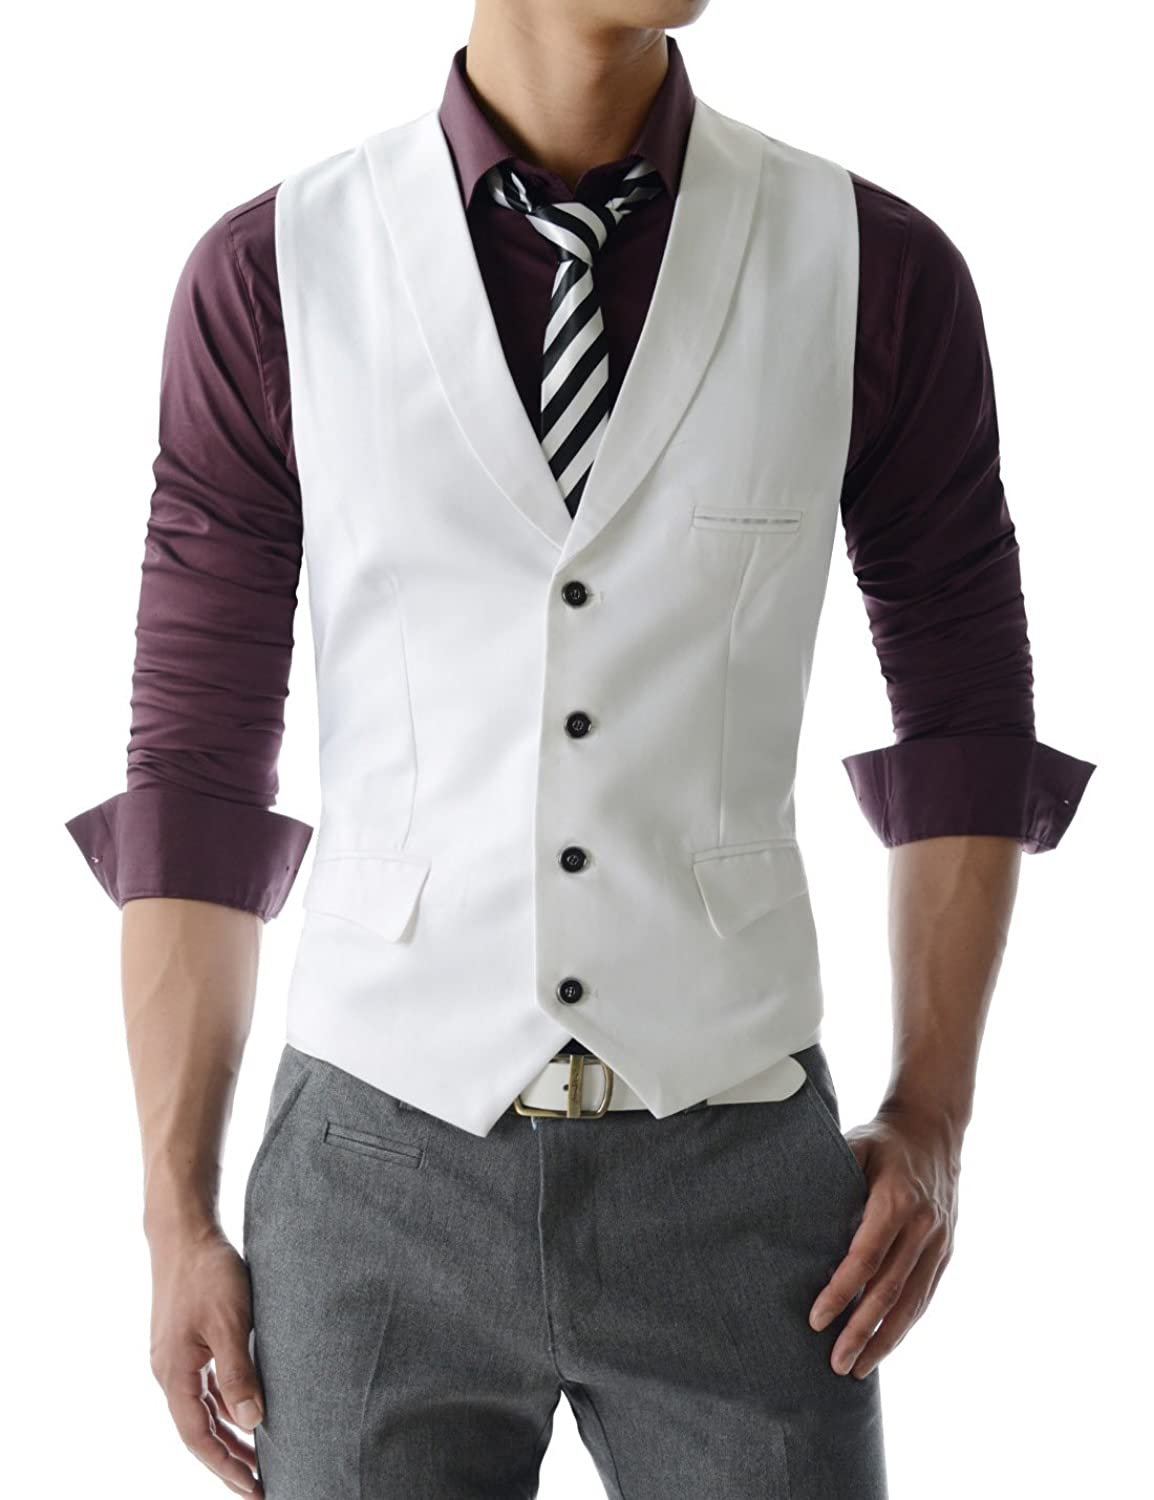 Men's Vintage Inspired Vests VE34 TheLees Mens premium layered style slim vest waist coat $33.99 AT vintagedancer.com